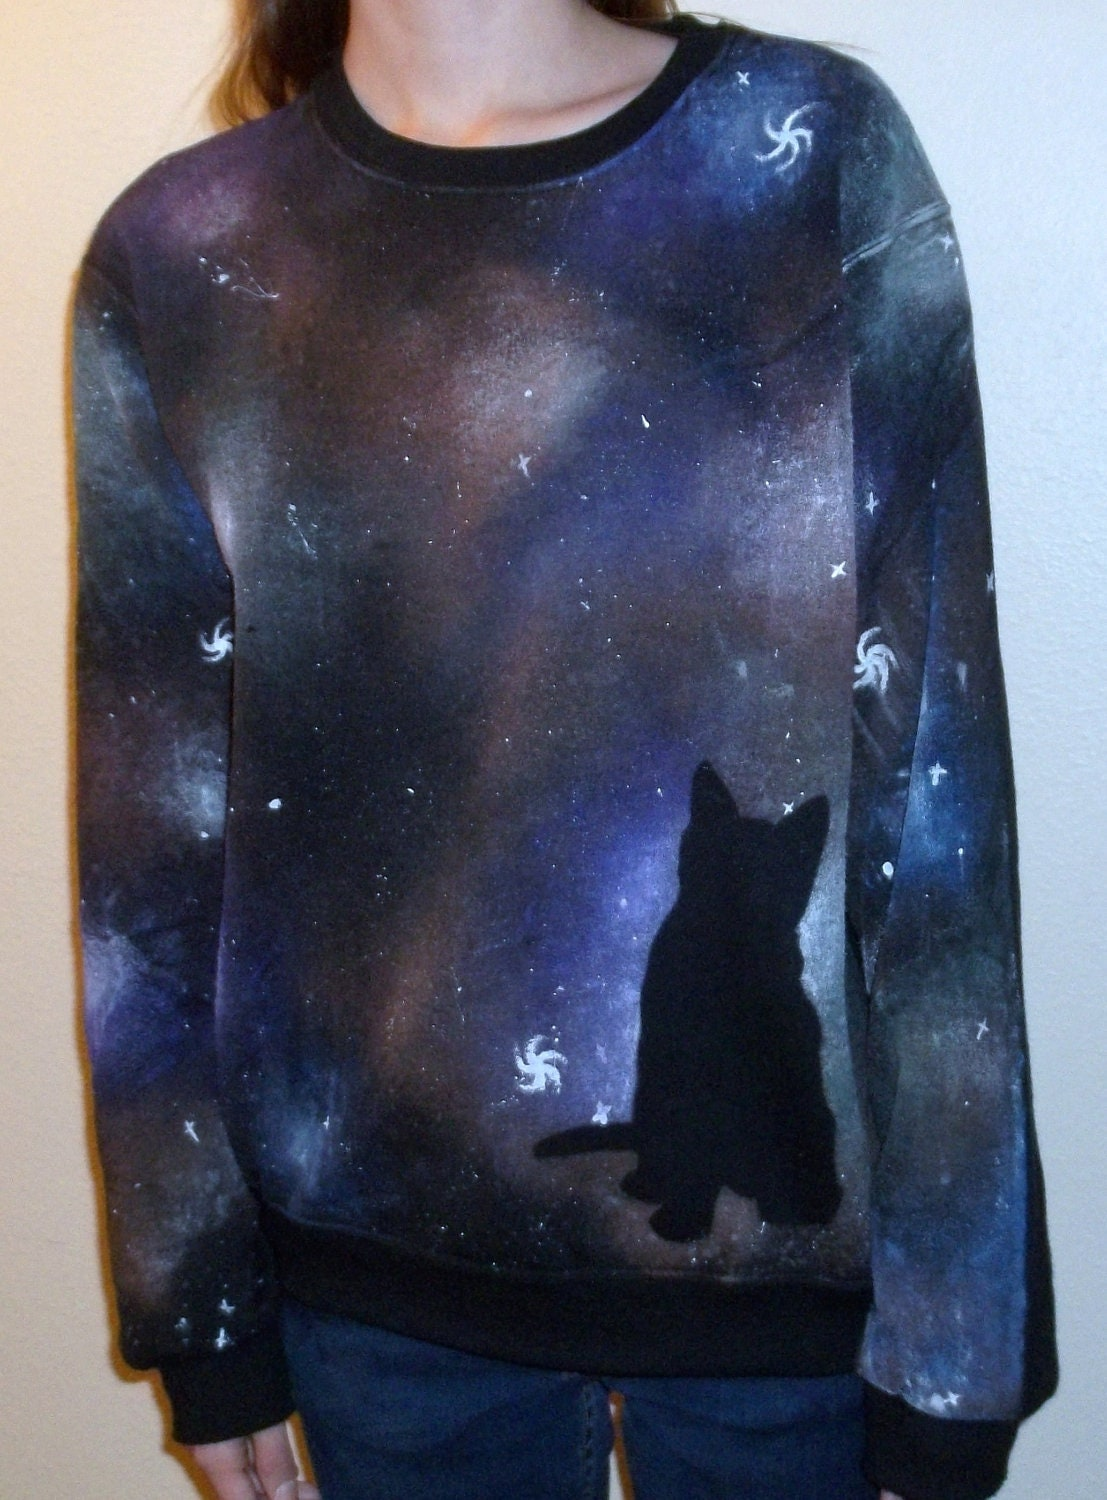 Multicolored Cat Galaxy Cosmos Sweater available in XL and XXL